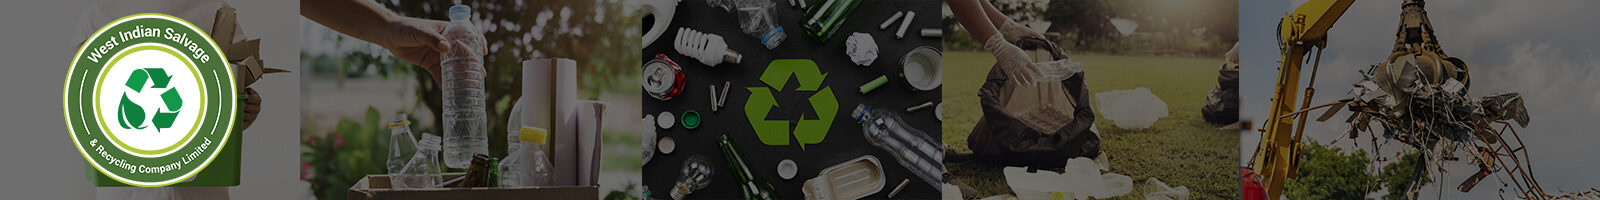 West Indian Salvage and Recycling Company Limited